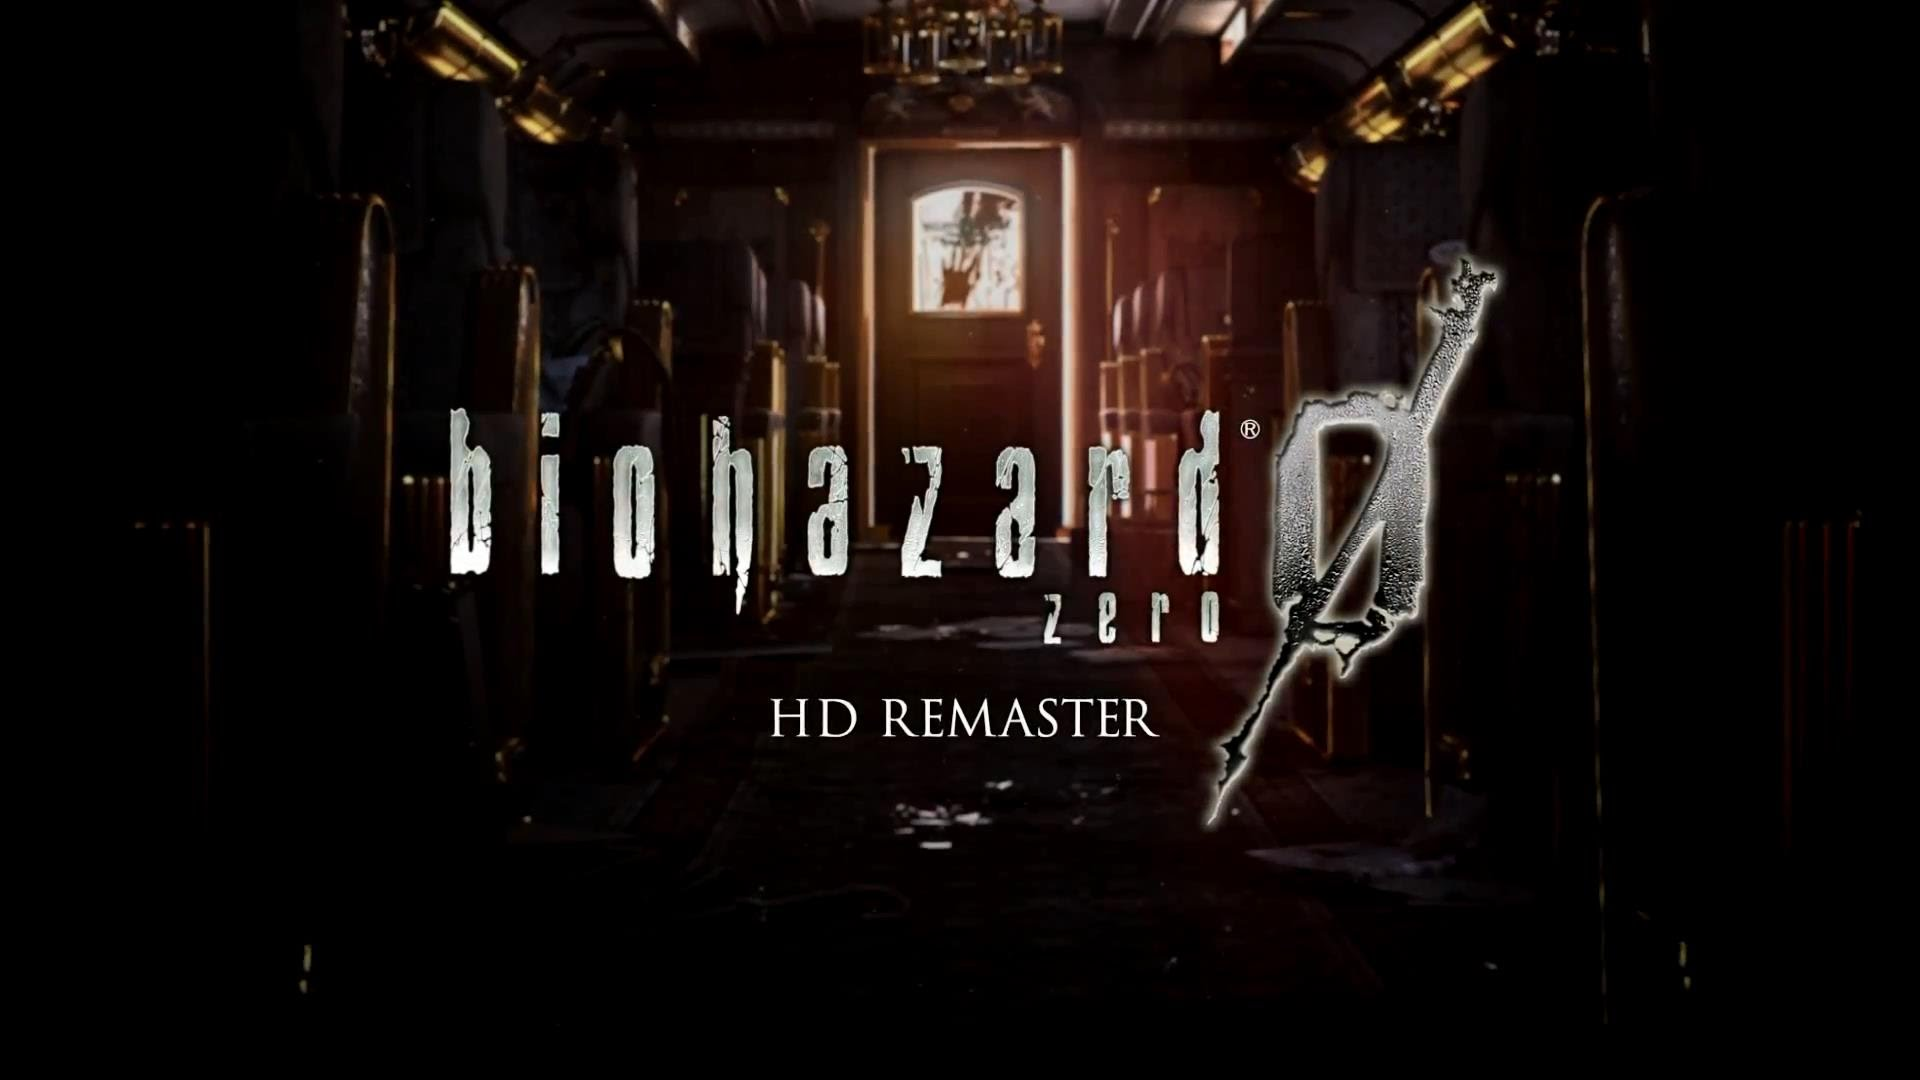 Resident Evil 0 Hd Remaster Free Download Crohasit Download Pc Games For Free